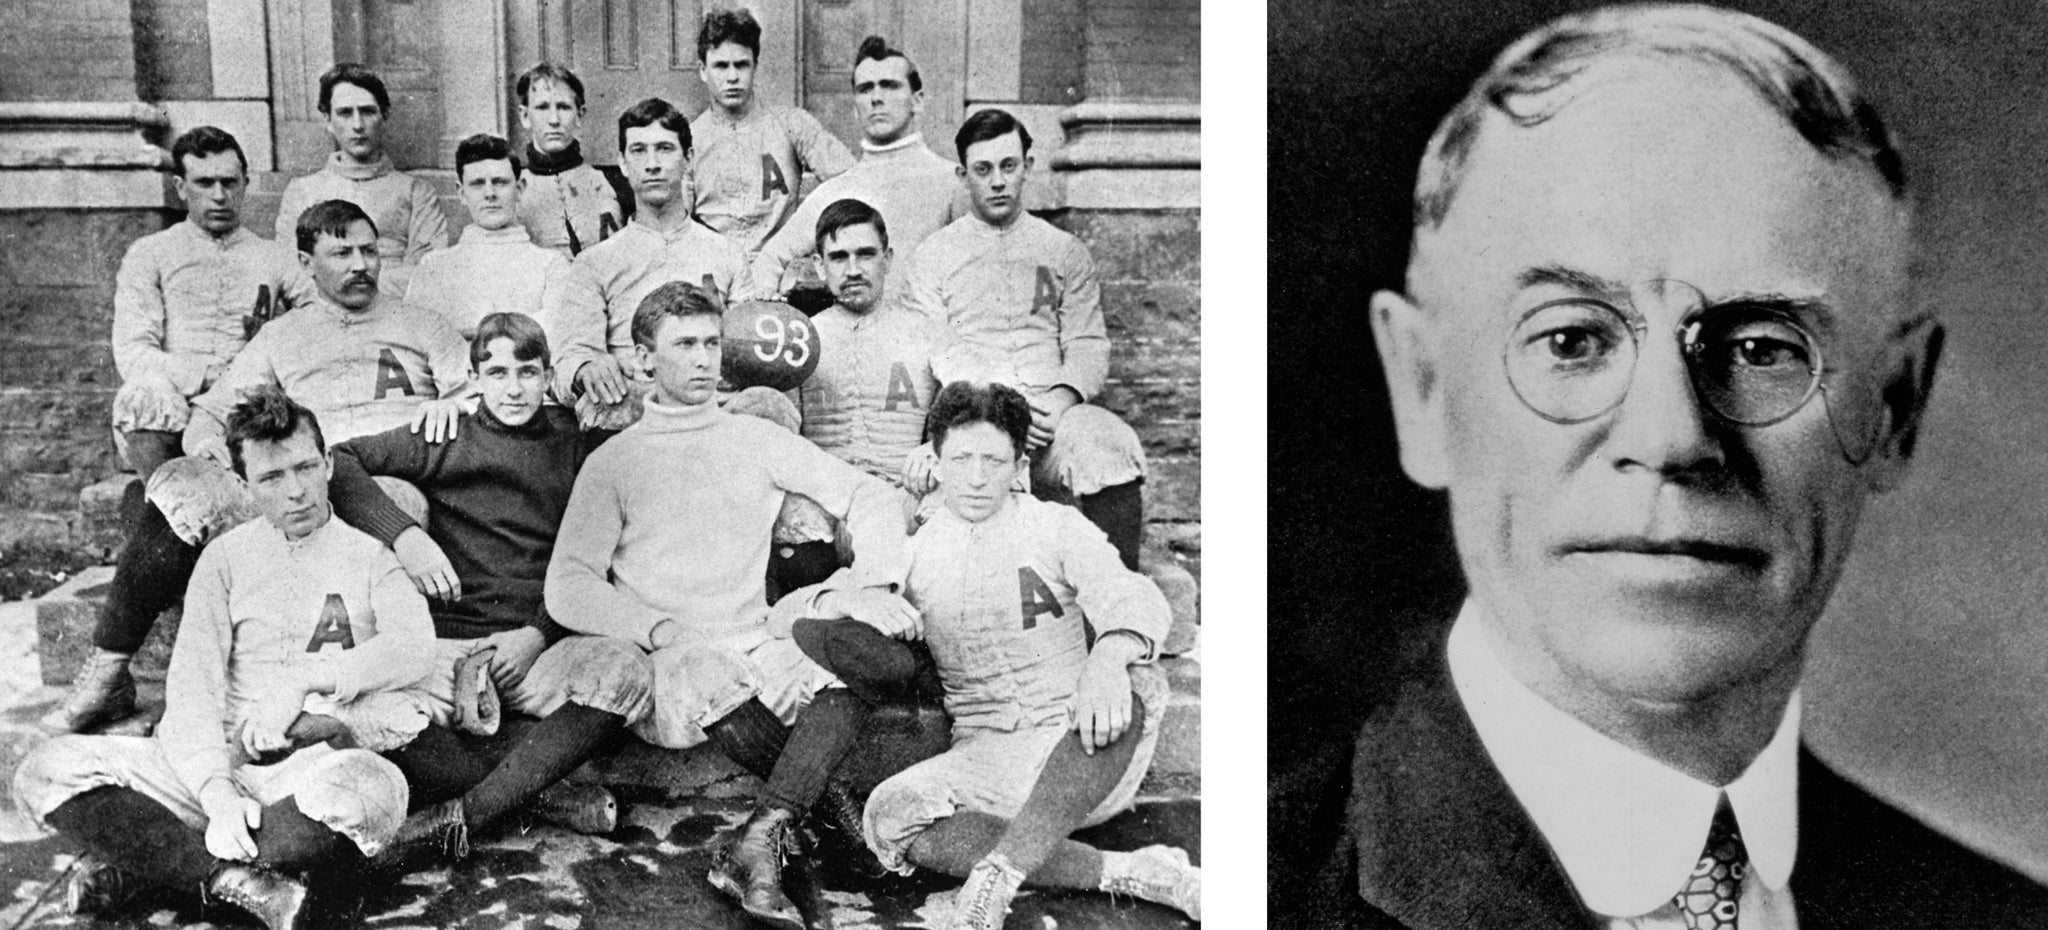 THE EARLY YEARS - Left: Allegheny College's first football team, 1893. Right: John Heisman, circa 1910. -- Courtesy of the Meadville Tribune (left) and Crawford County Historical Society (right)